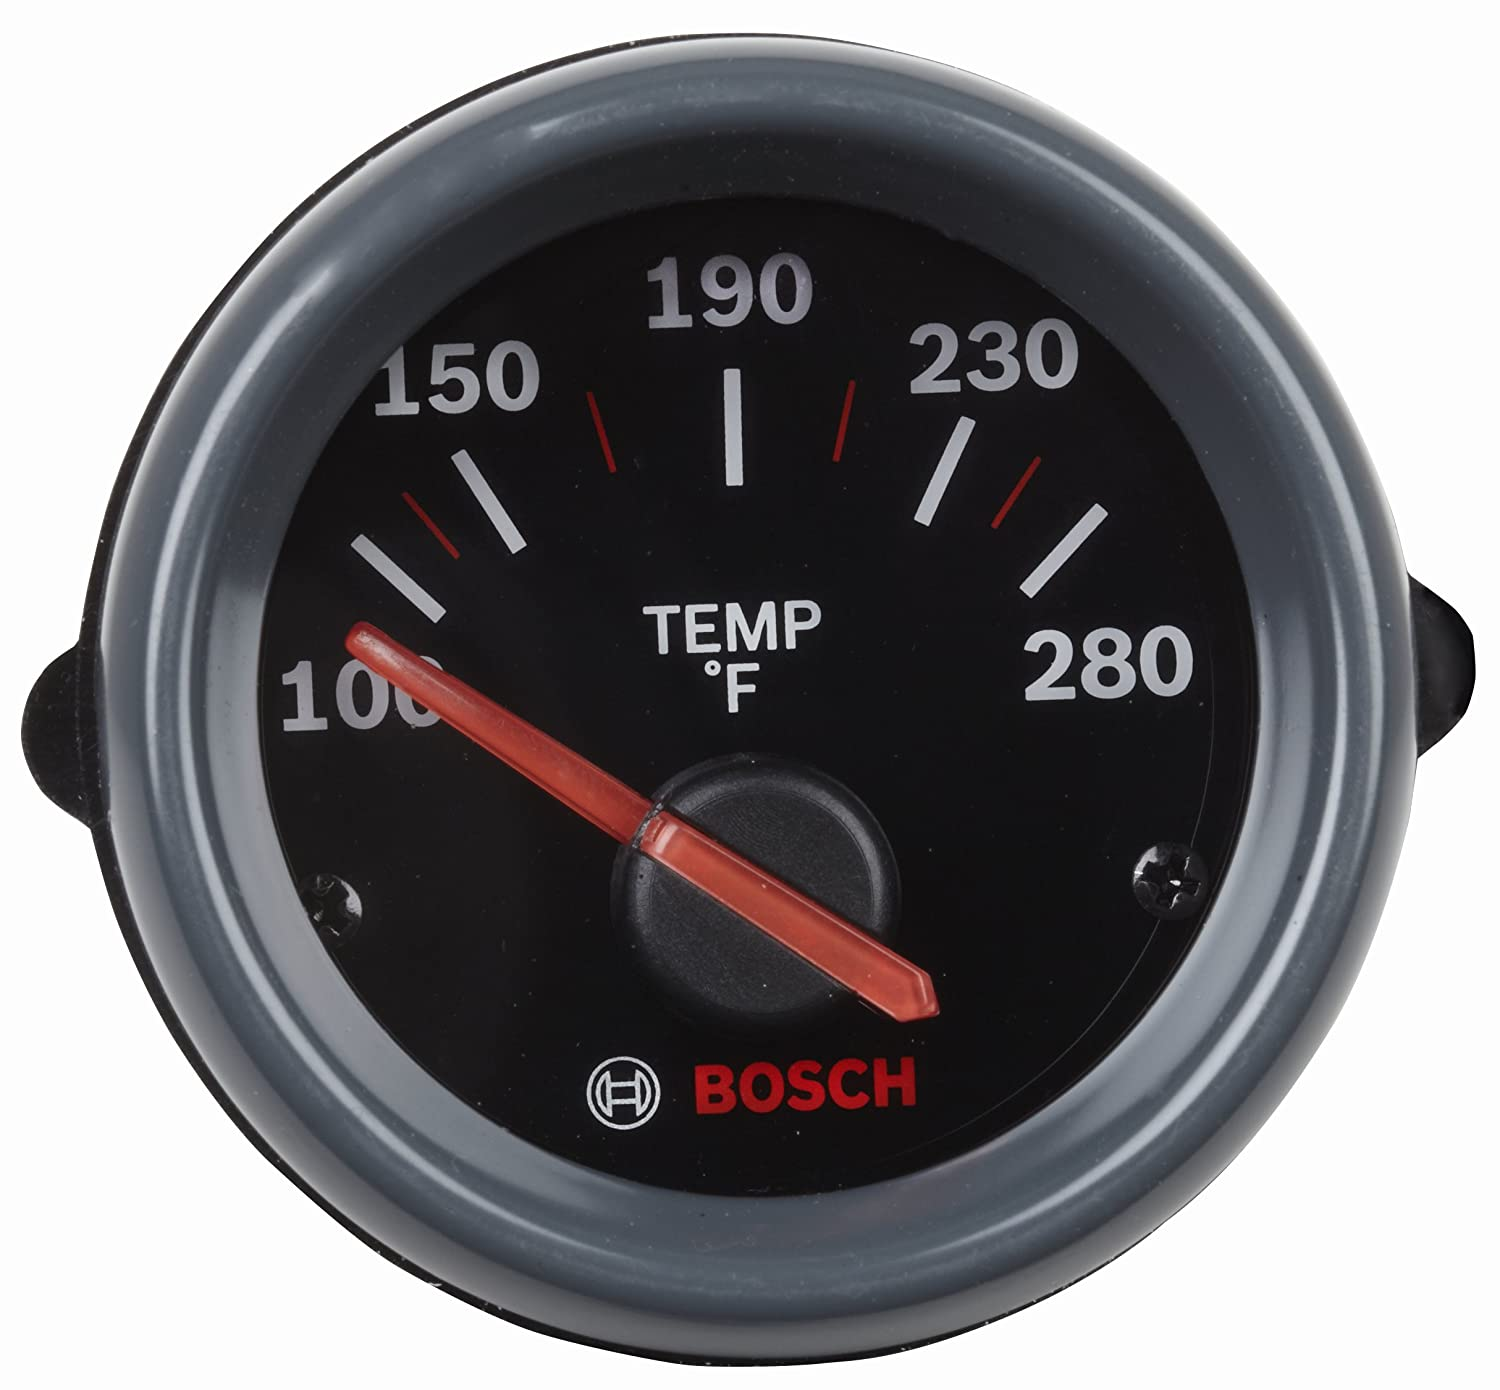 Bosch SP0F000001 Sport ST 2' Electrical Water/Oil/Transmission Temperature Gauge